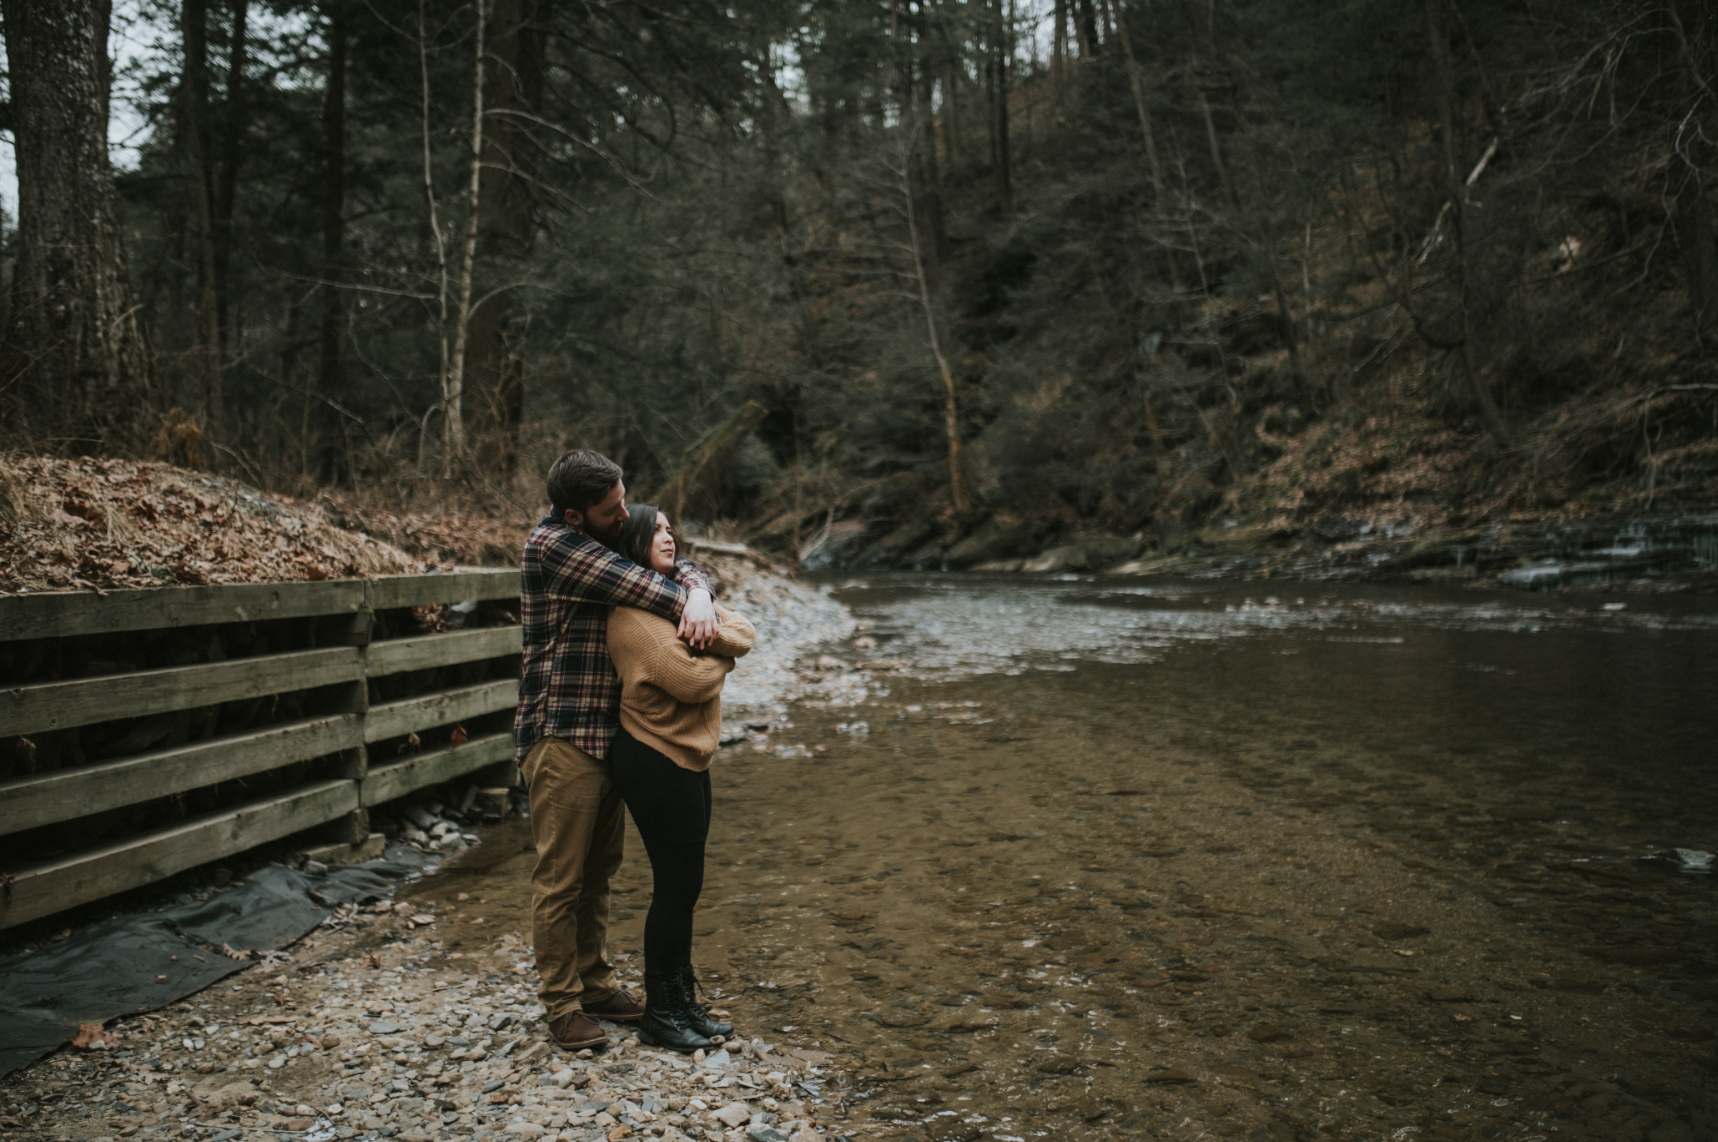 matt-natalia-winter-woods-engagement-session-pennsylvania-wedding-photographer-28